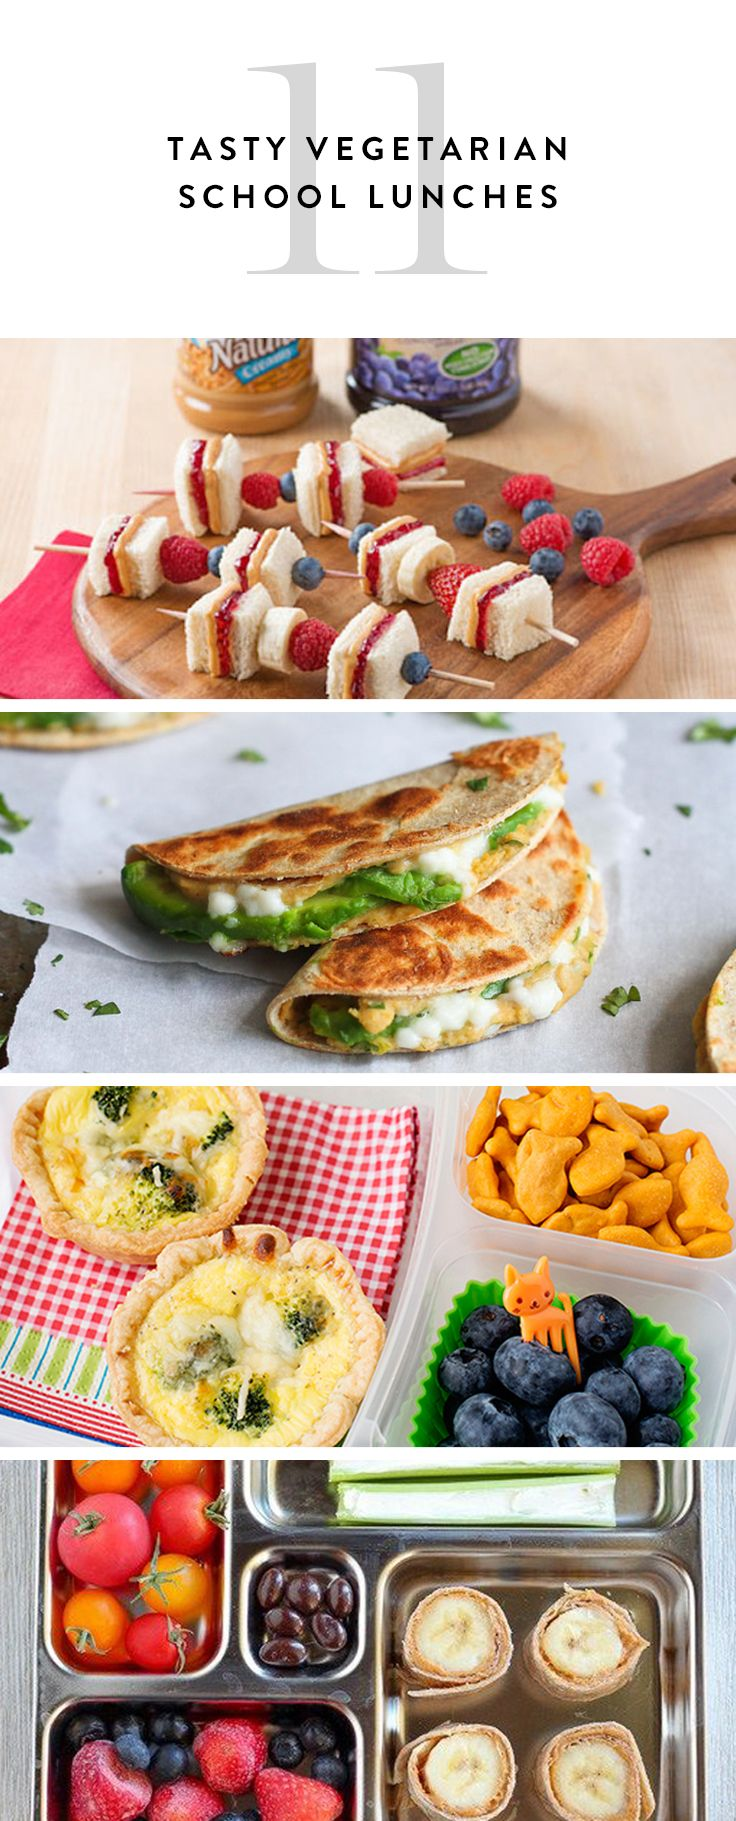 These vegetarian school lunches are healthy and delicious.